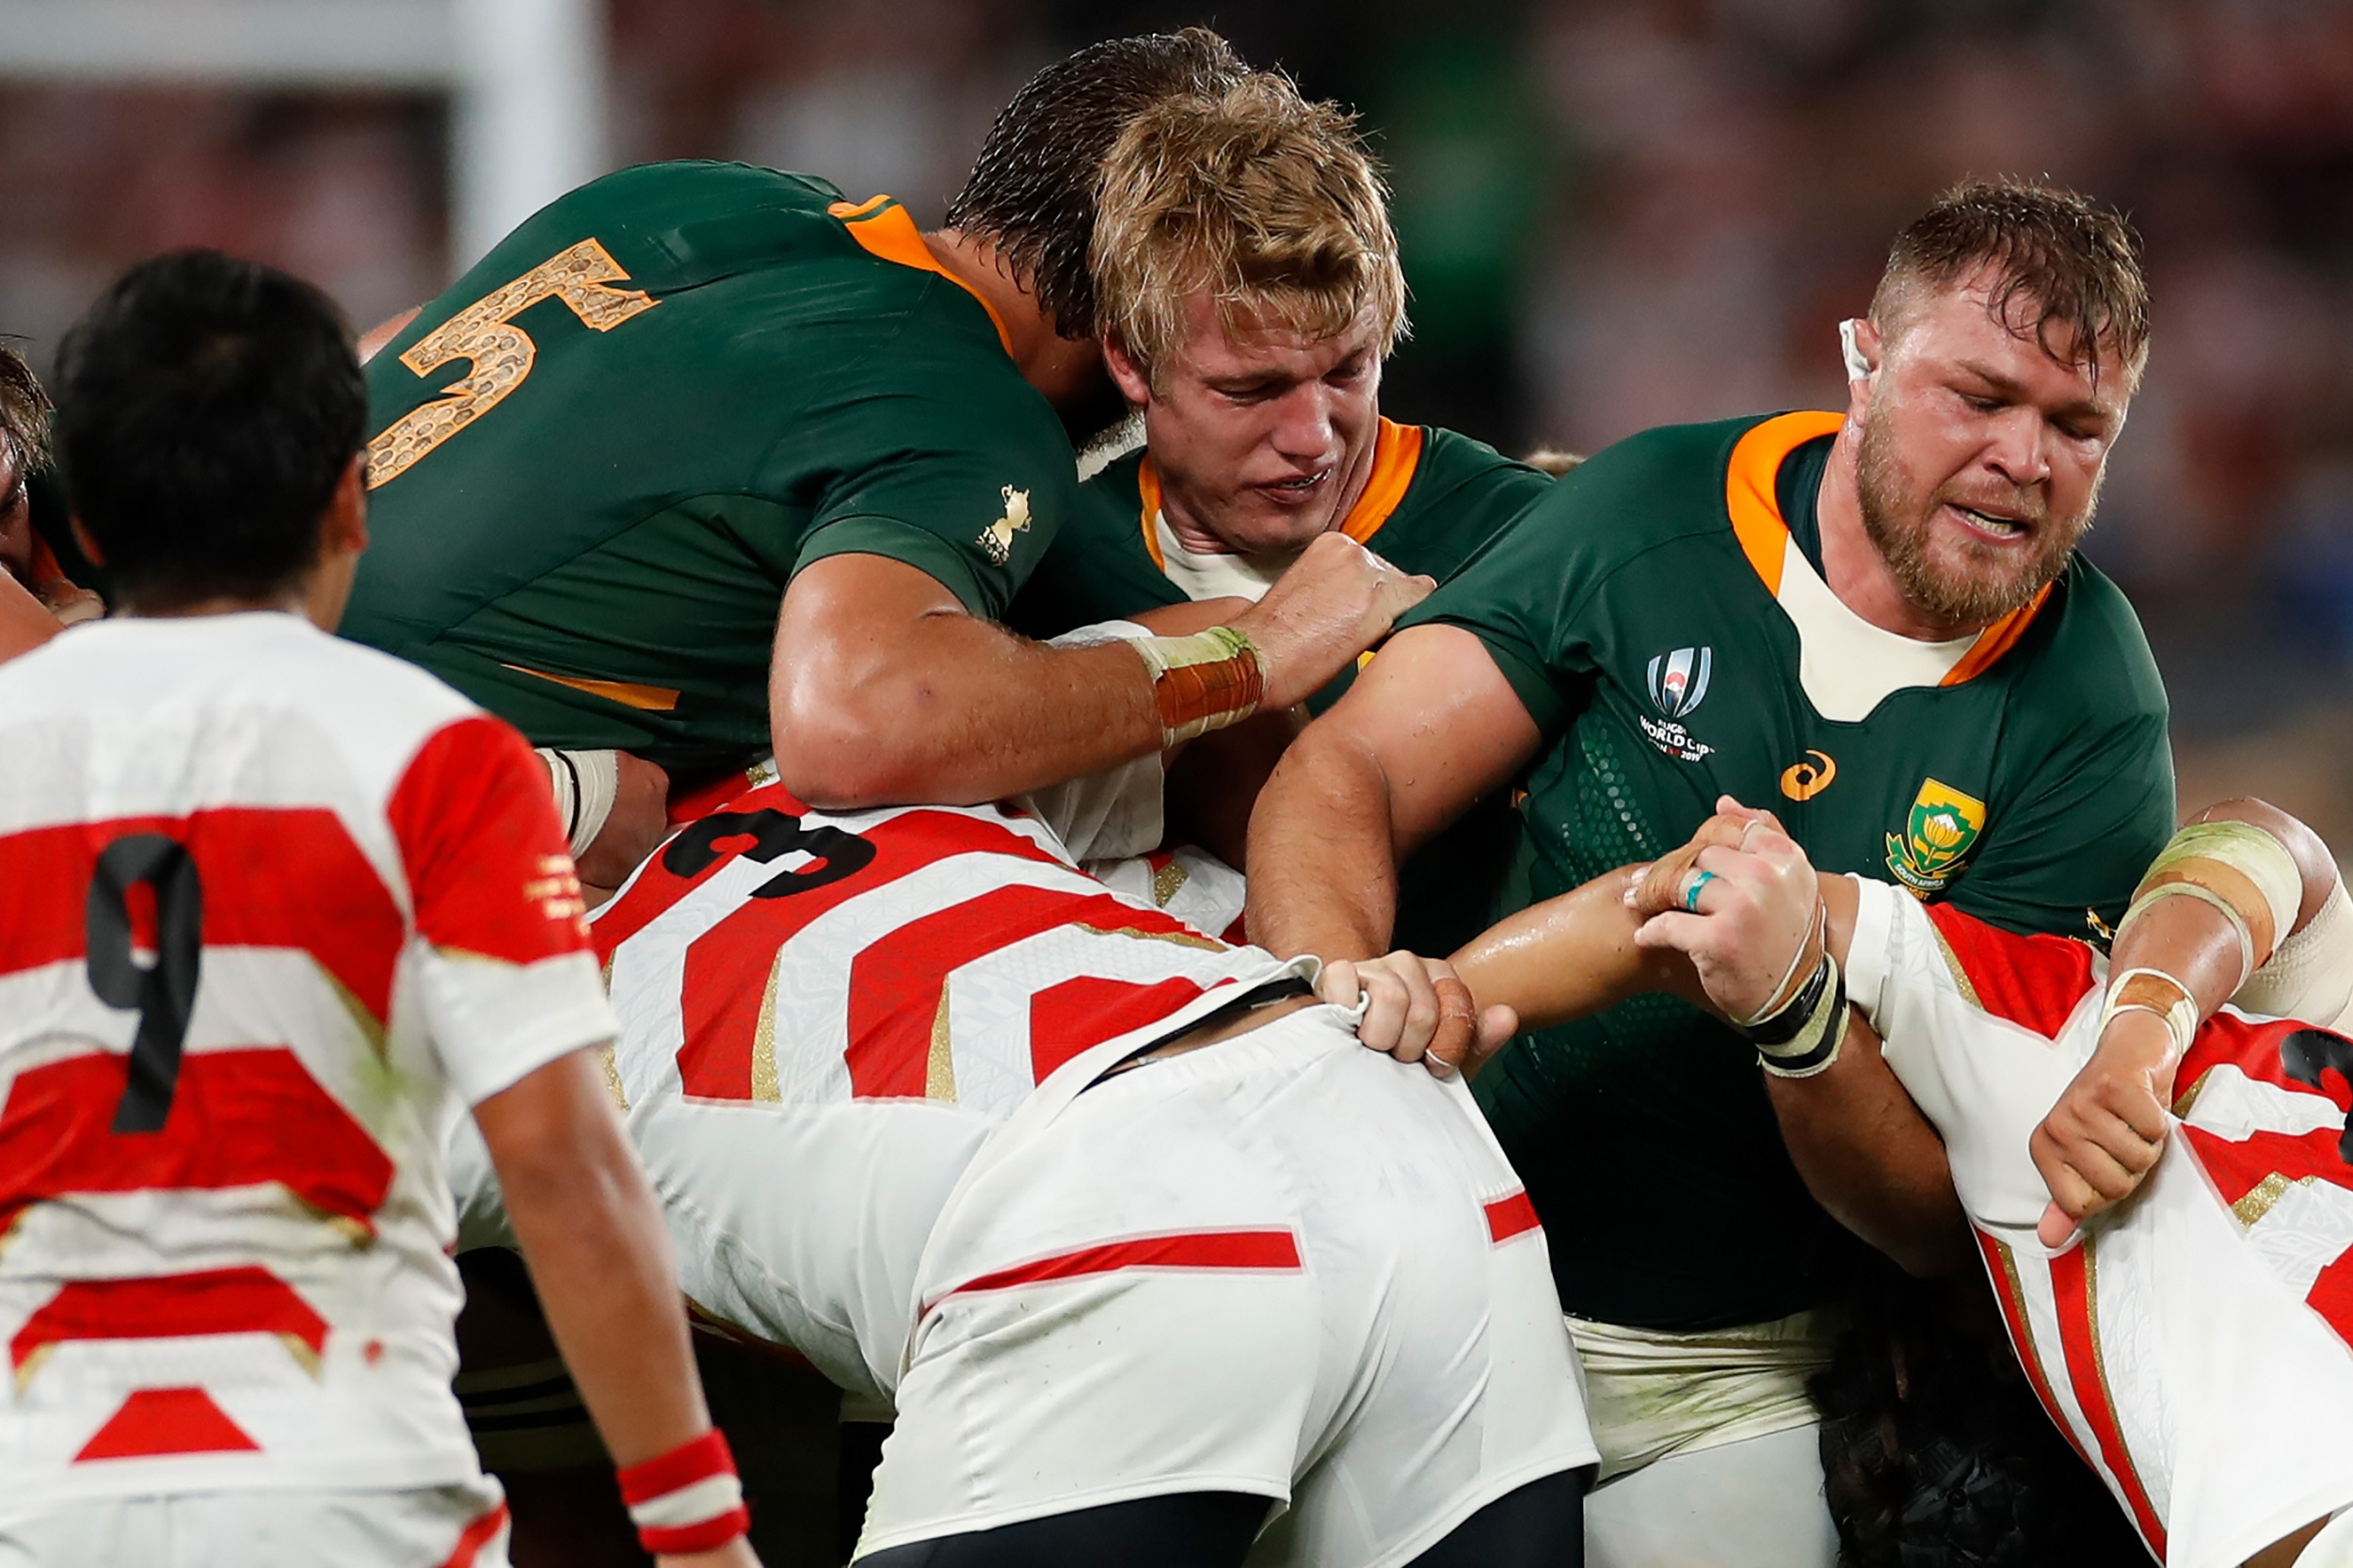 Duane Vermeulen (R), South Africa's flanker Pieter-Steph Du Toit (C) and South Africa's lock Lood De Jager (top L) are defended during the Japan 2019 Rugby World Cup quarter-final match between Japan and South Africa.